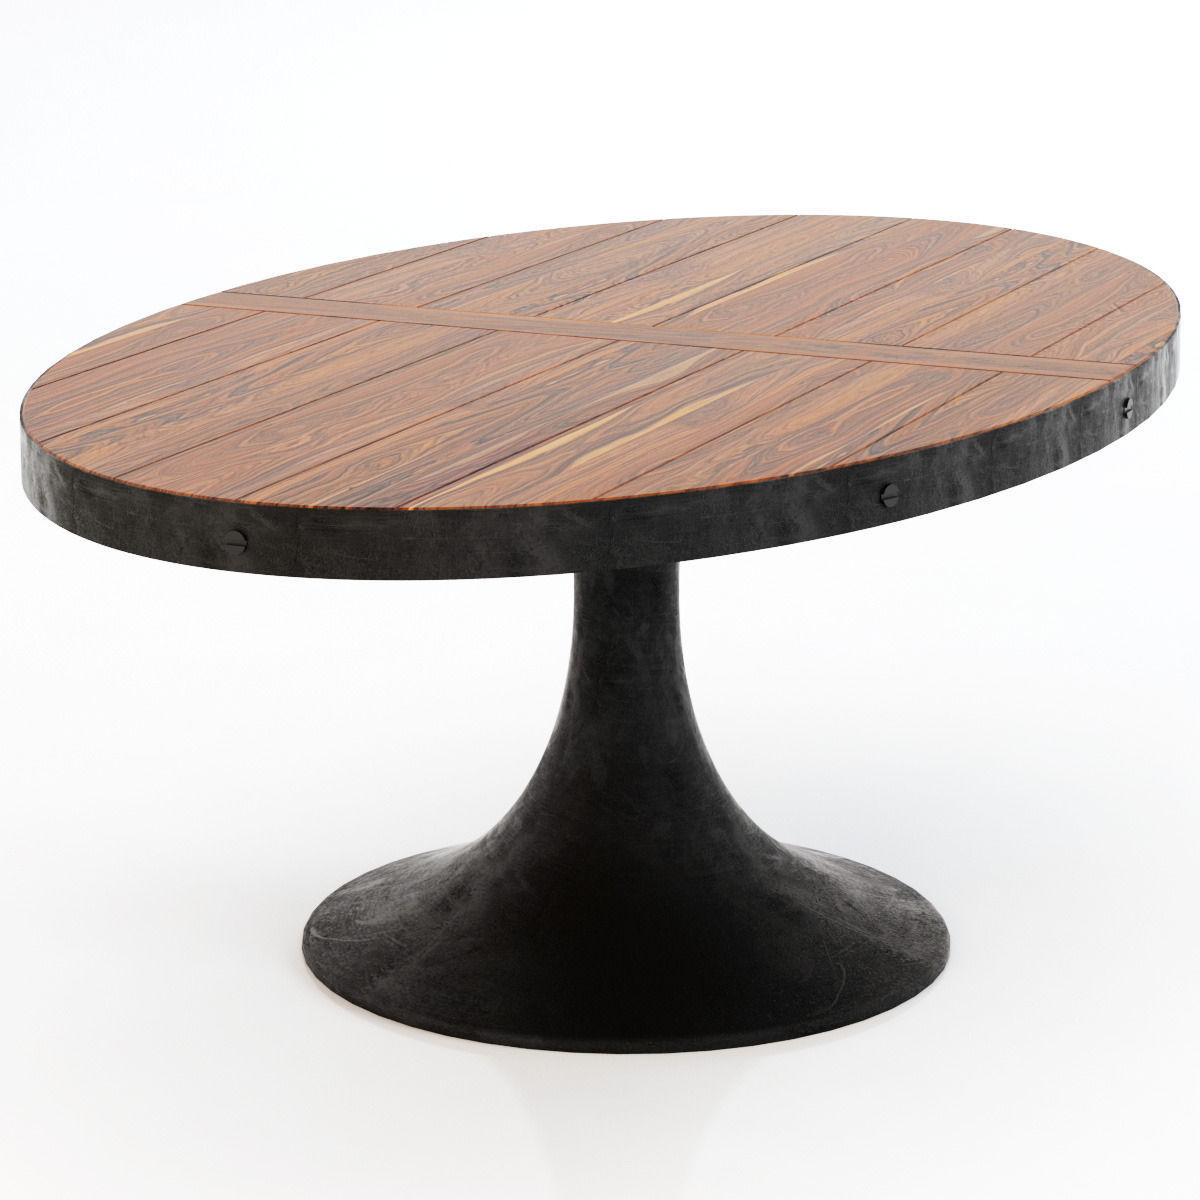 Restoration Hardware Aero Oval Dining Table 3d Model Max